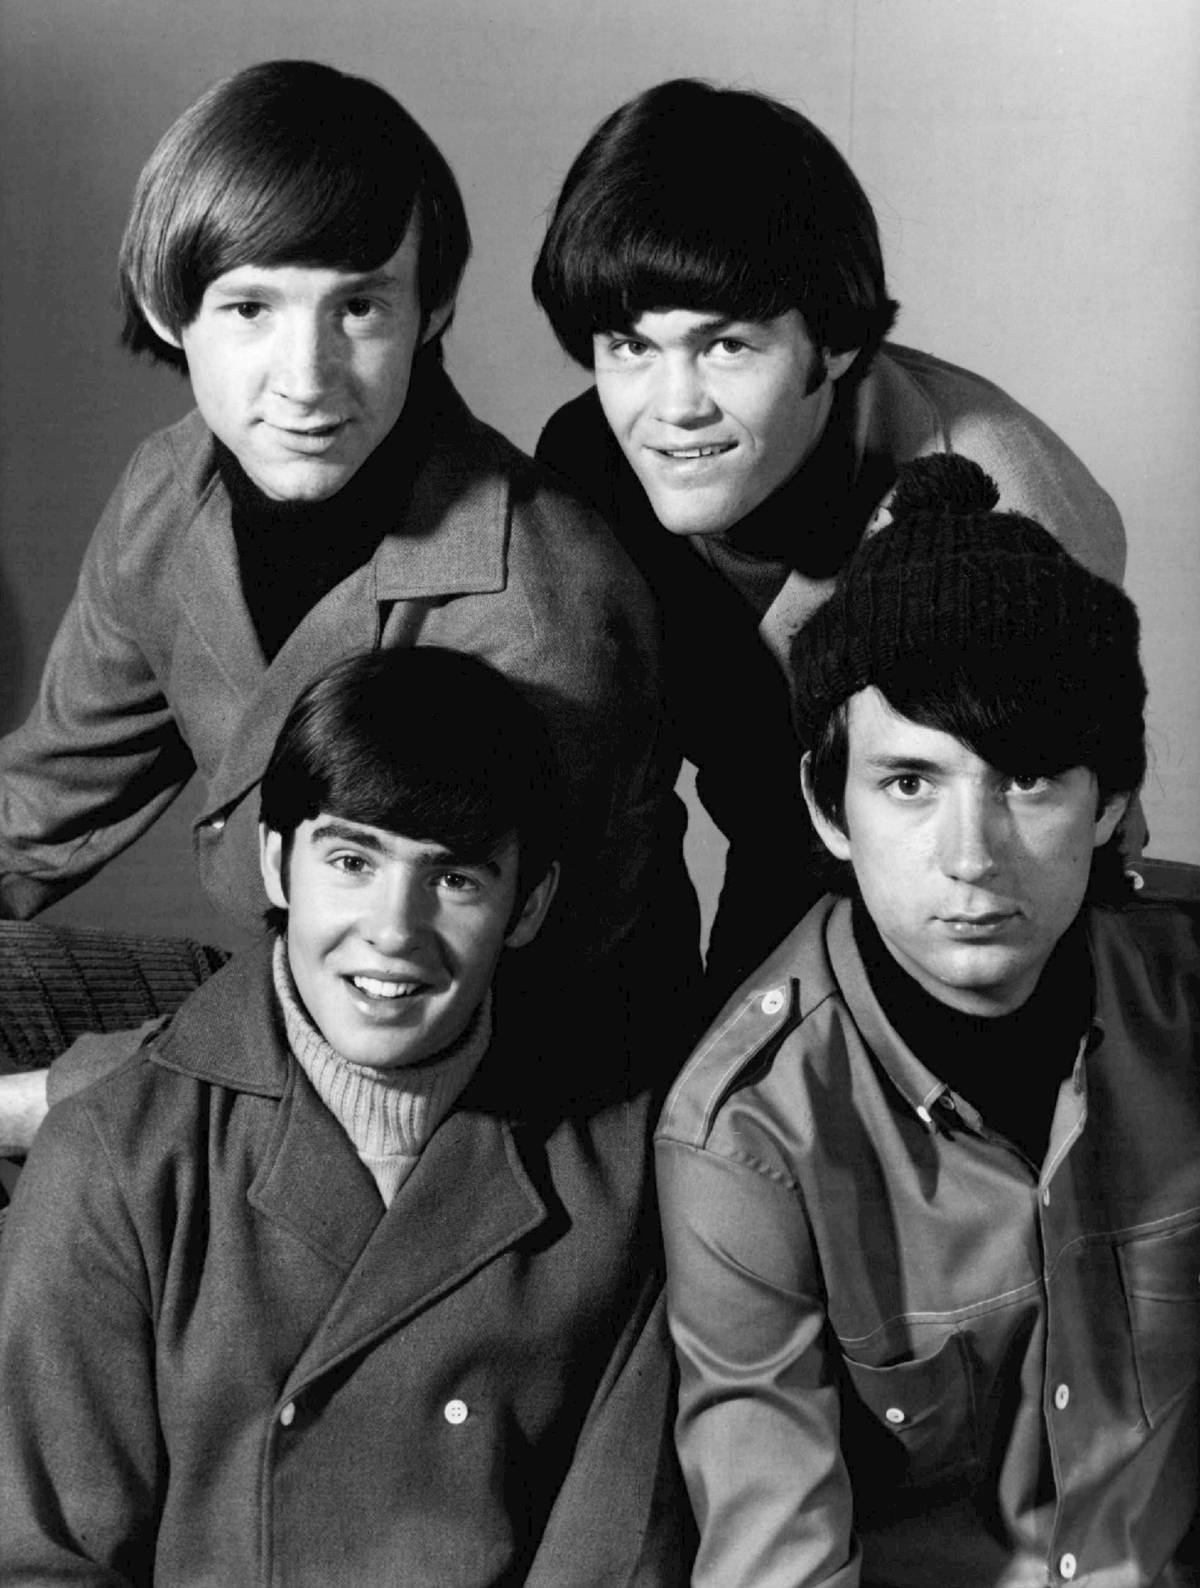 The Monkees riding high in 1966